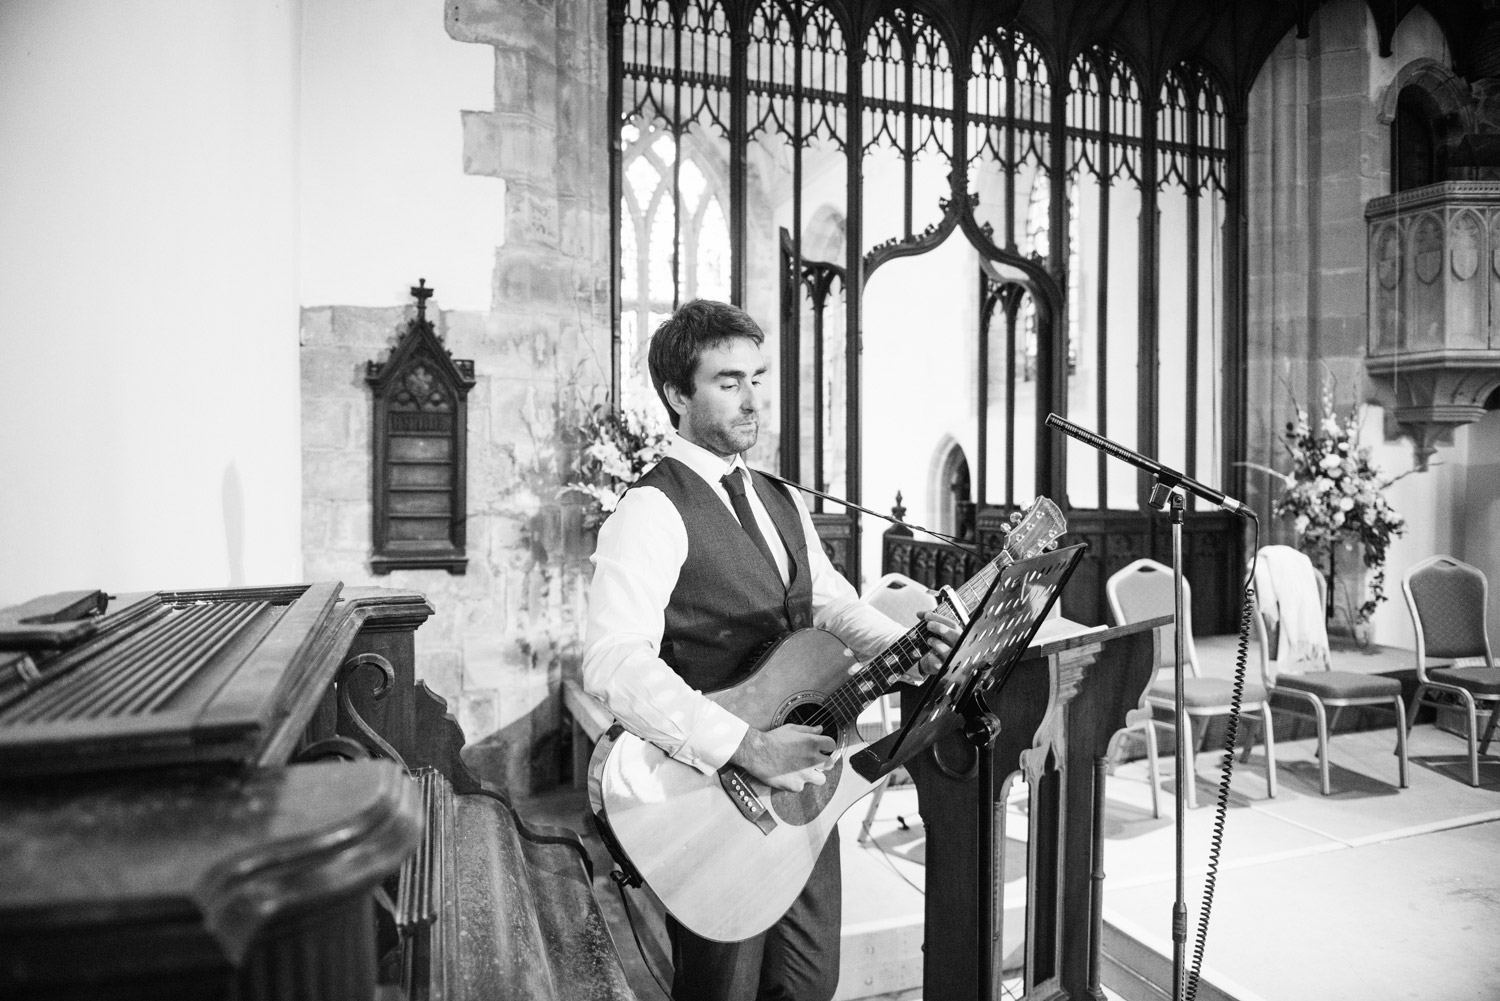 guitar-wedding-ceremony-song